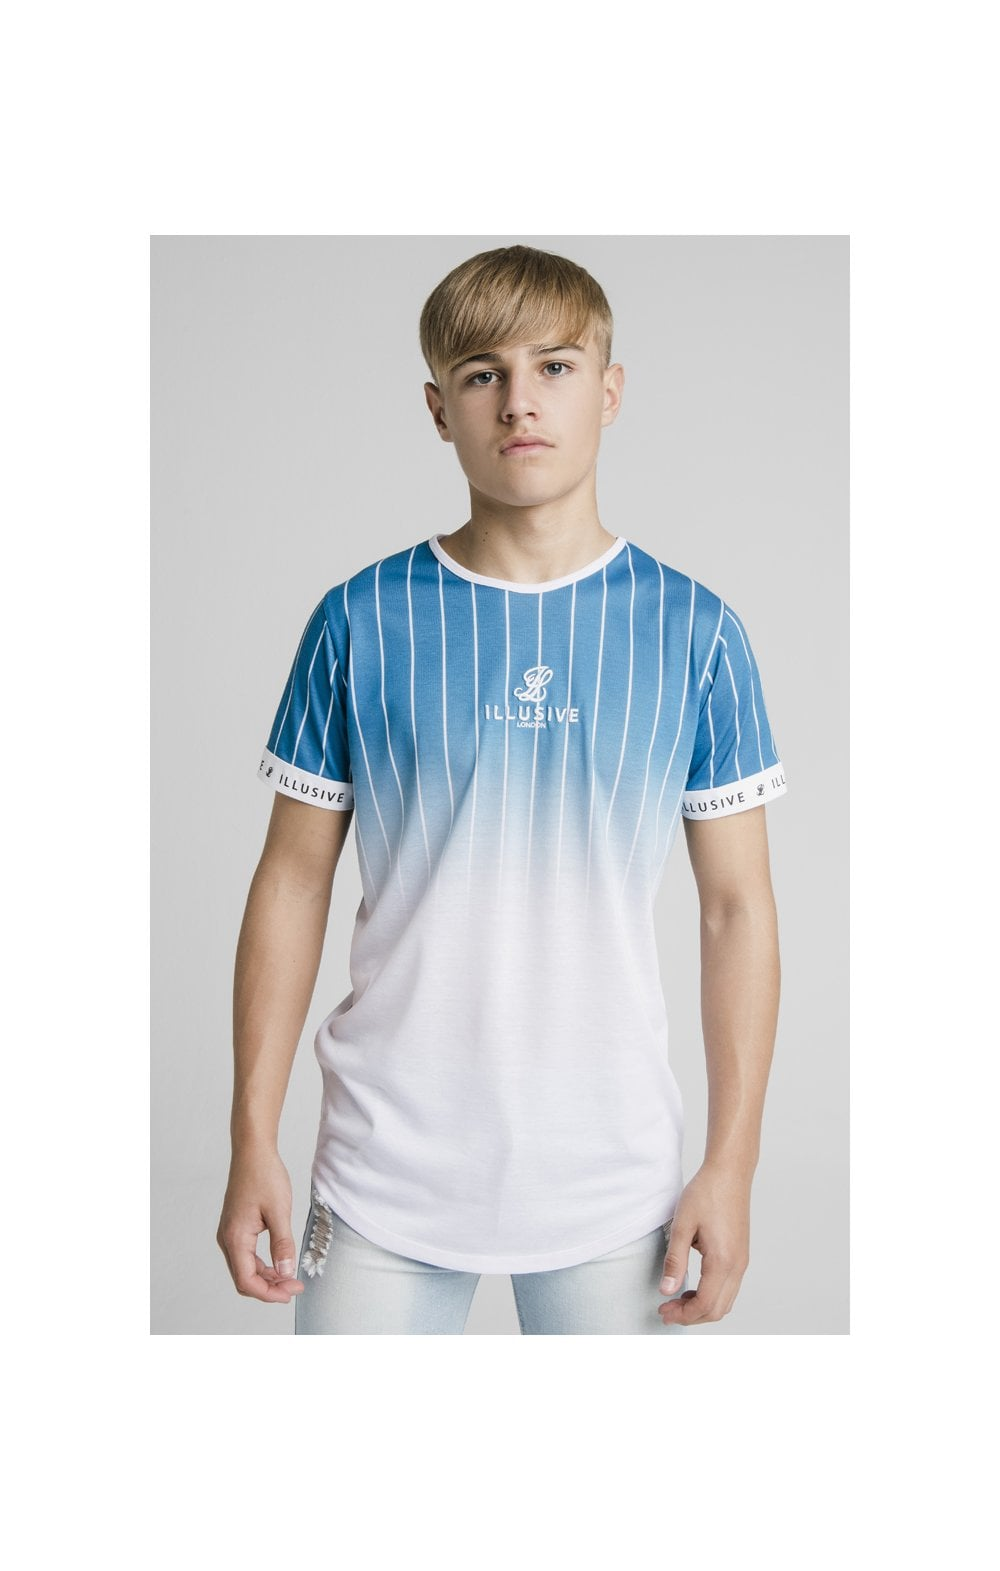 Illusive London Fade Stripe Tech Tee - Teal & White